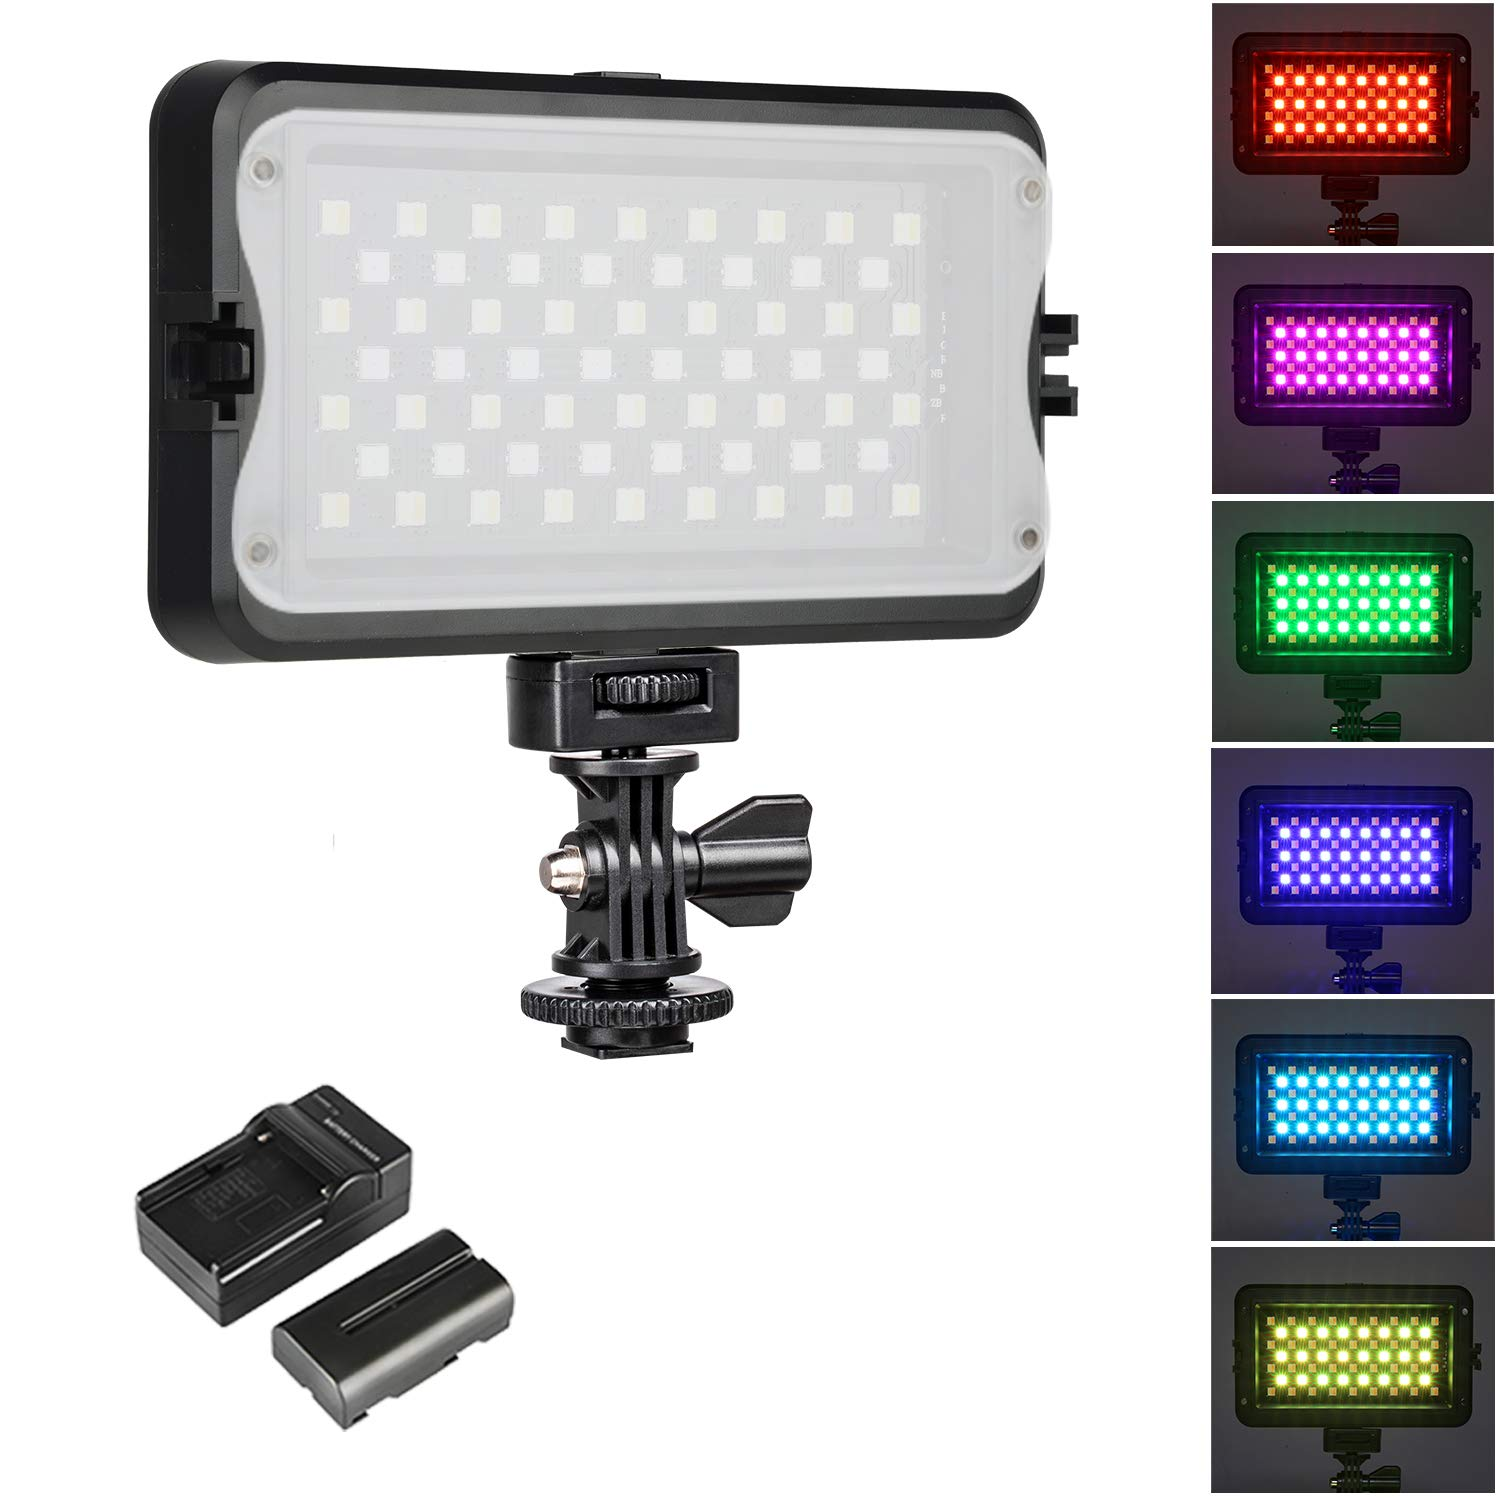 [Upgraded] RGB LED Camera Video Light, Dimmable 2500K-8500K Camcorder LED Light Panel for Digital SLR Cameras with 0-299 Muti-Color Types, White Filter, Battery and Charger by VILTROX